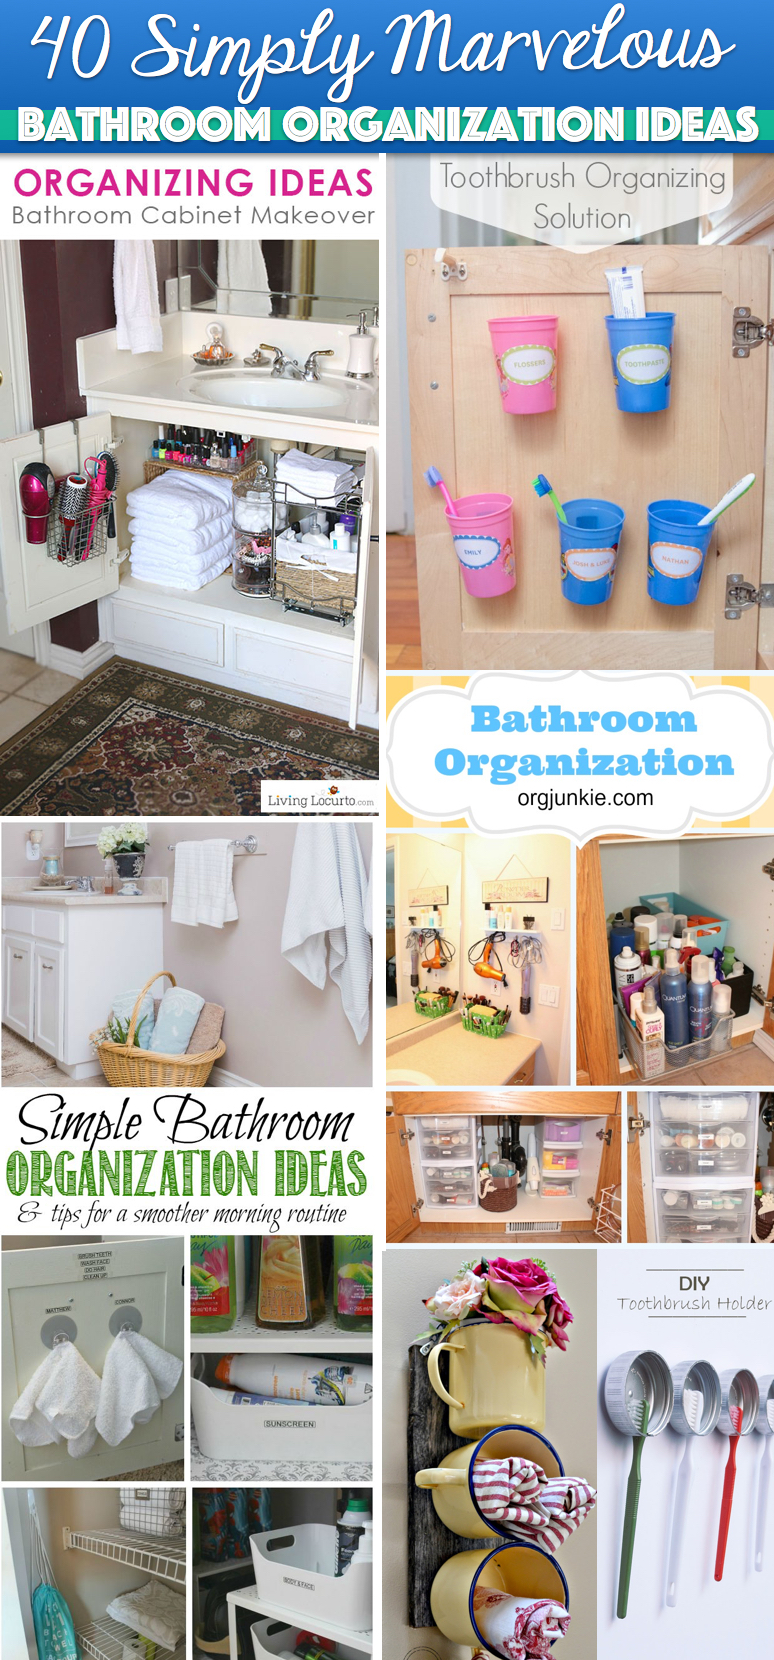 40 Simply Marvelous Bathroom Organization Ideas To Get Rid Of All That Clutter